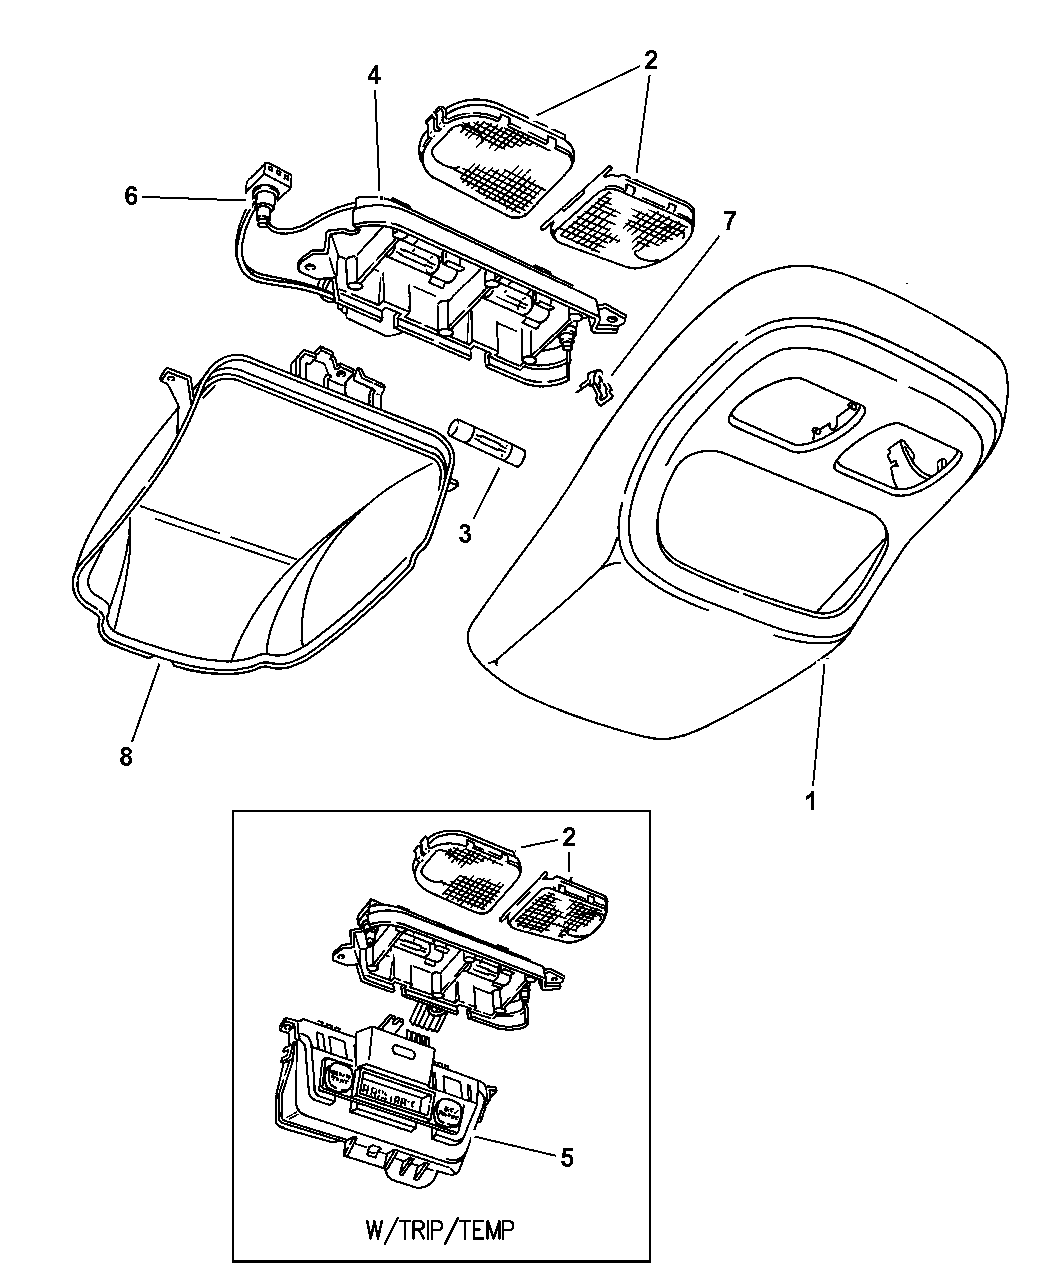 1998 dodge ram 1500 overhead console wiring diagram